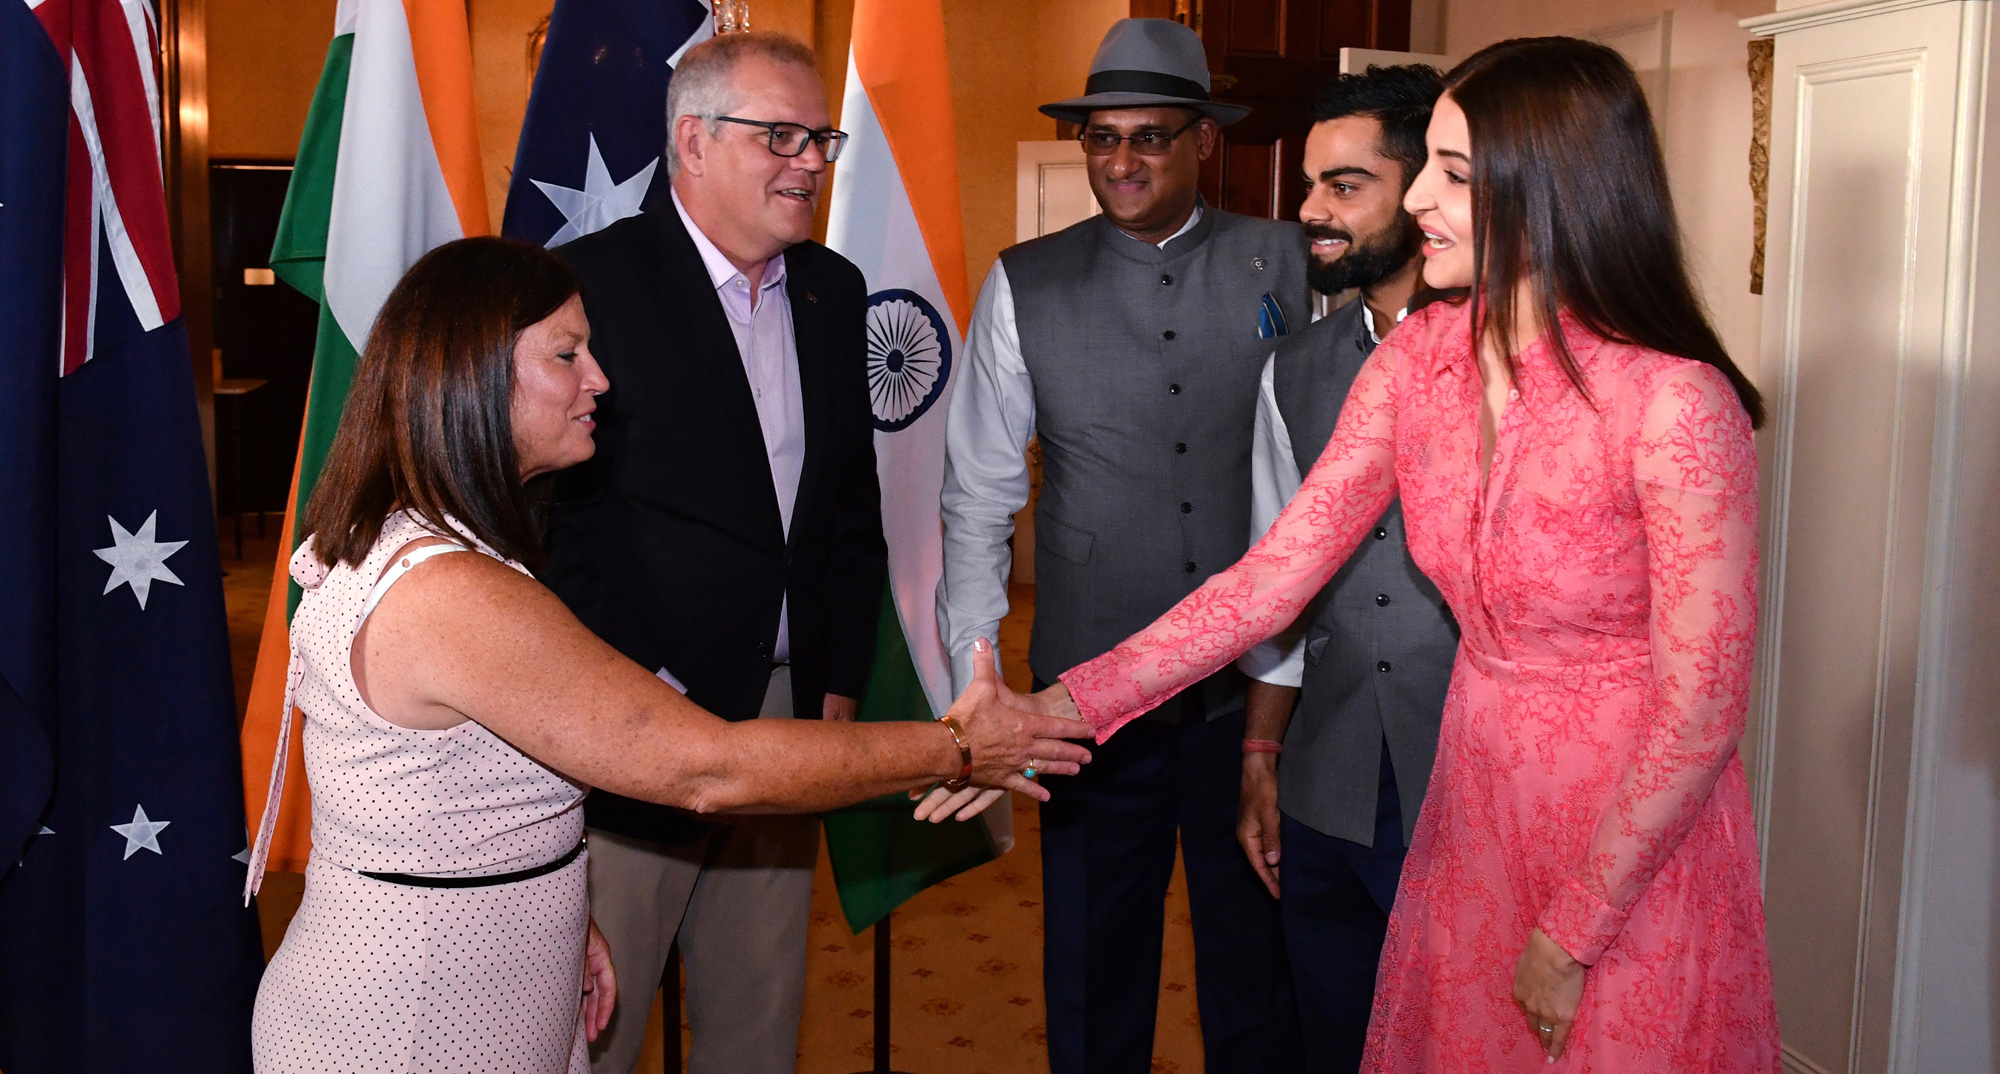 Australia's Prime Minister Scott Morrison, second left, and his wife, Jenny, right, meet India's cricket captain Virat Kohli, second right, and his wife, Anushka Sharma, right, during a reception for Australia's and India's cricket teams at Kirribilli House in Sydney on Tuesday, Jan. 1, 2019.